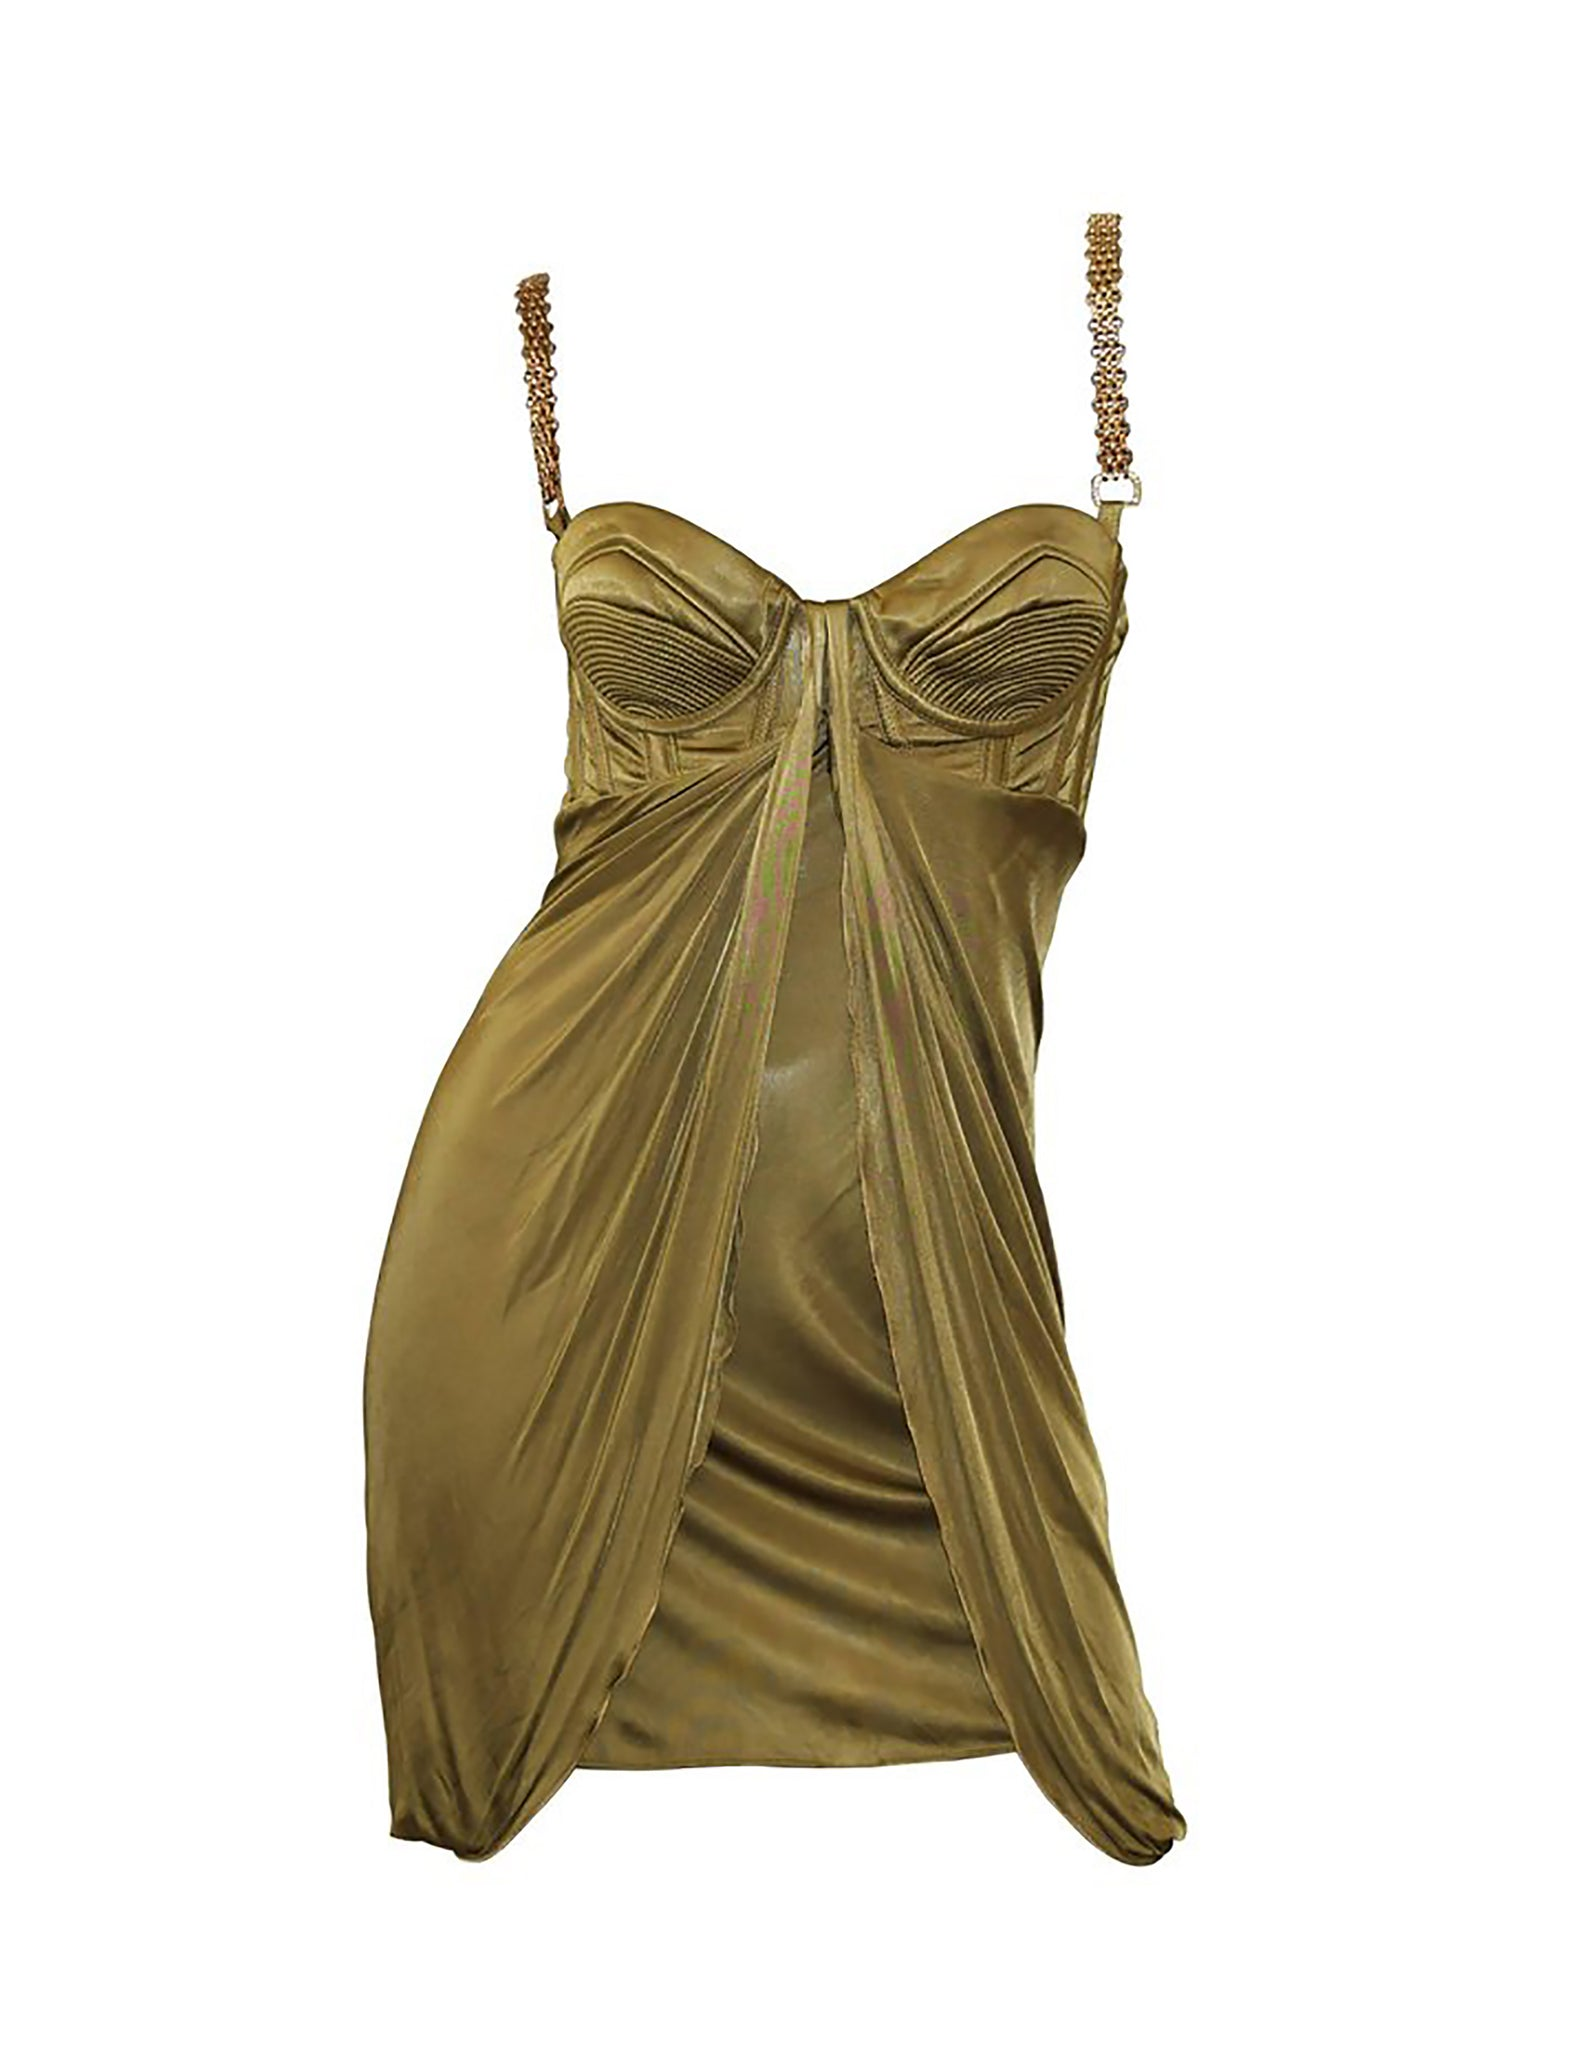 Versace Chain Embellished Olive Corset Cocktail Dress - Sizes 40 & 44